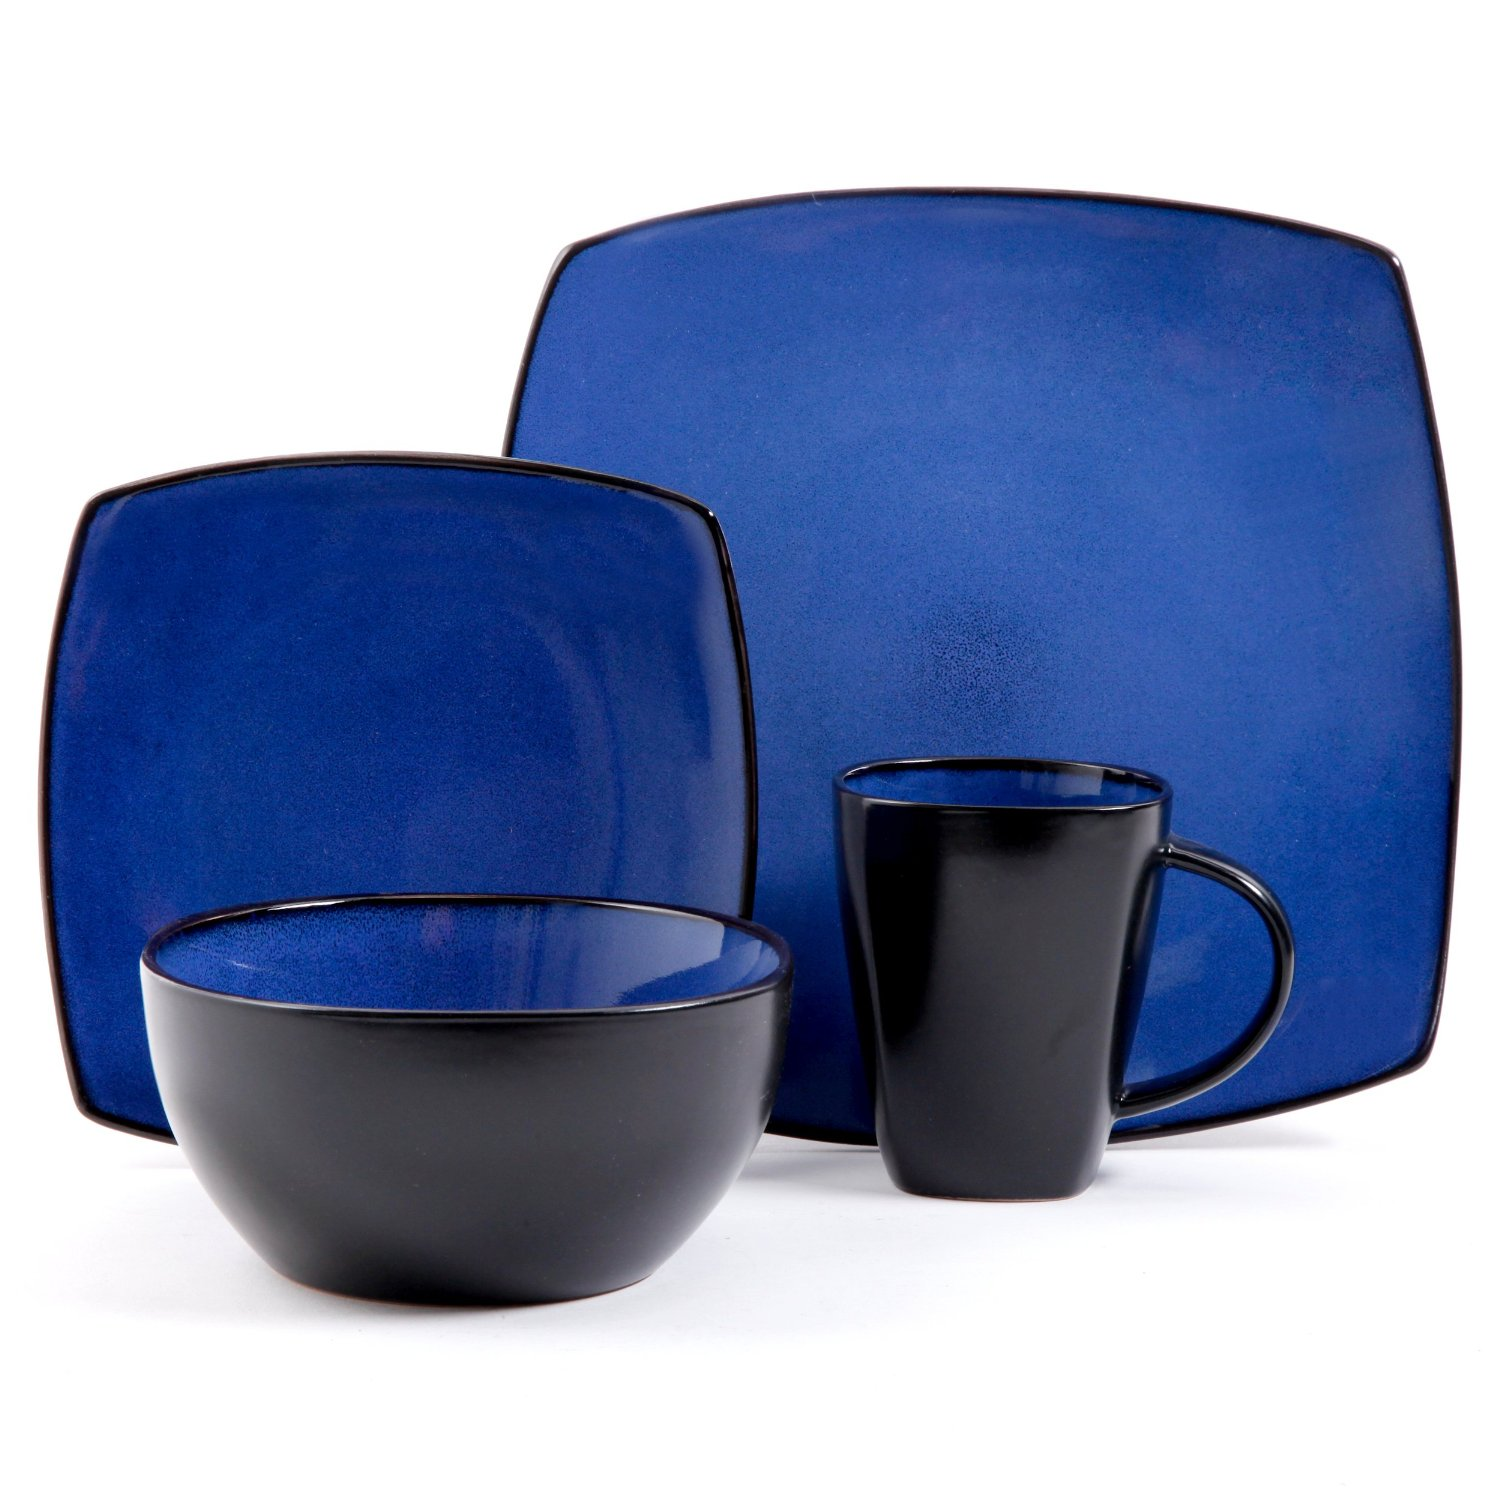 Stoneware Dinnerware Sets | Owl Dinnerware Sets | Target Plates and Bowls